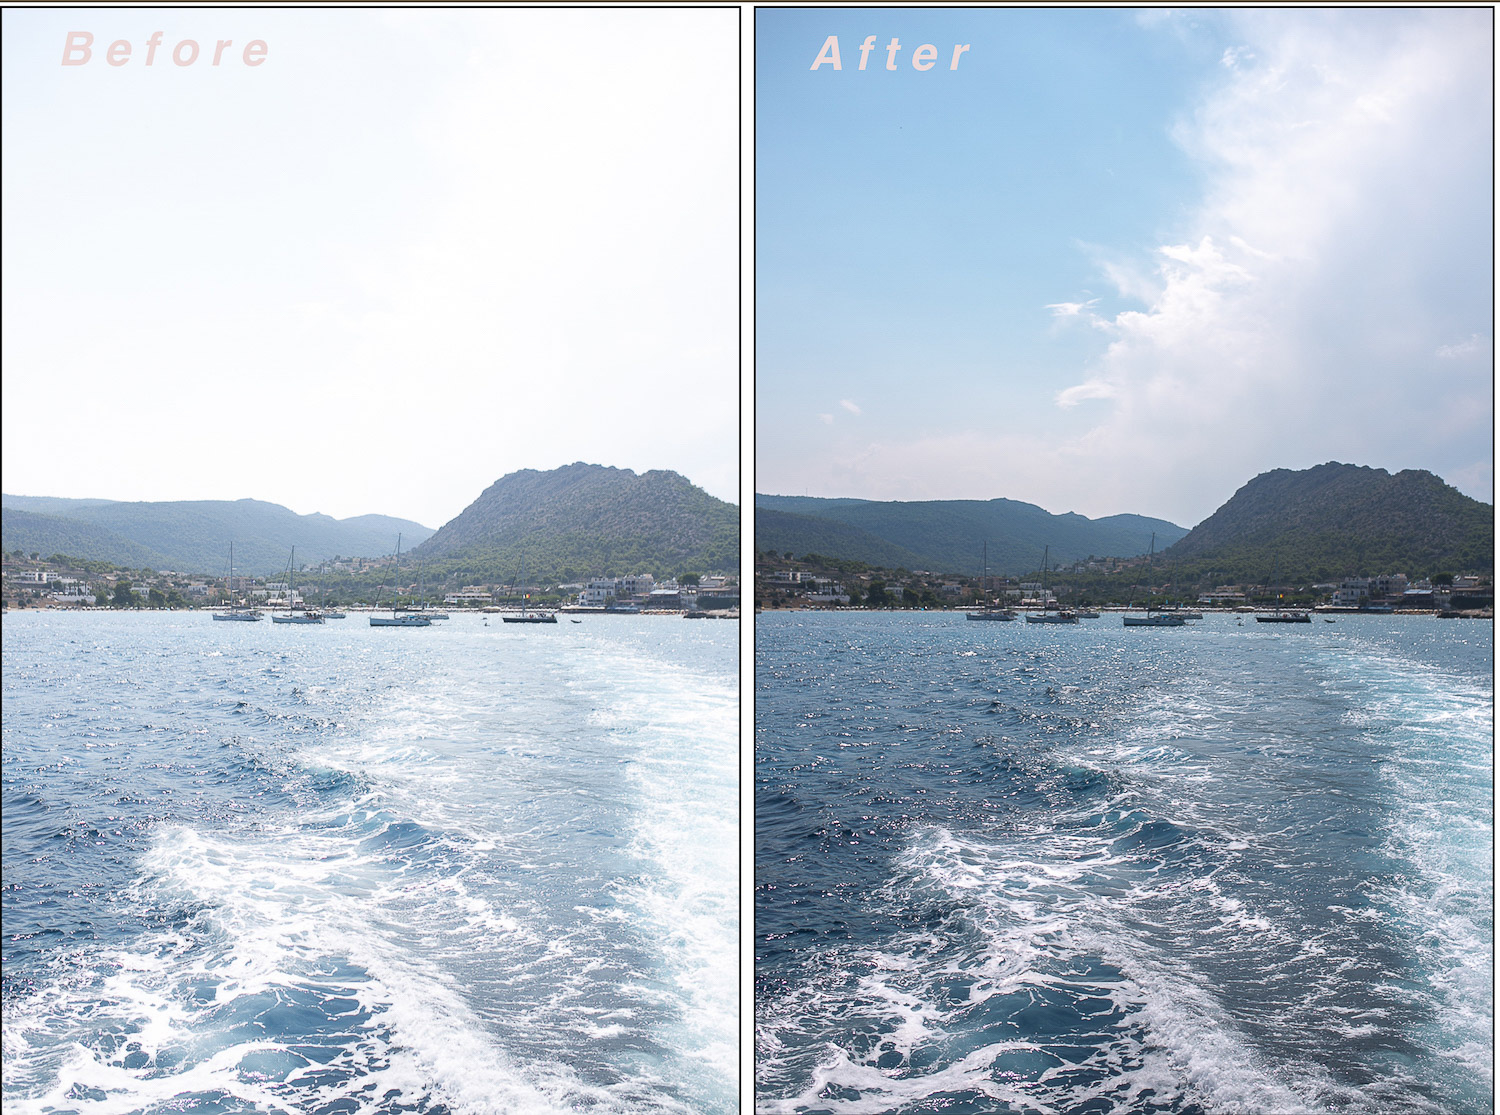 How to Achieve a Consistent and Clean Photo Editing Style